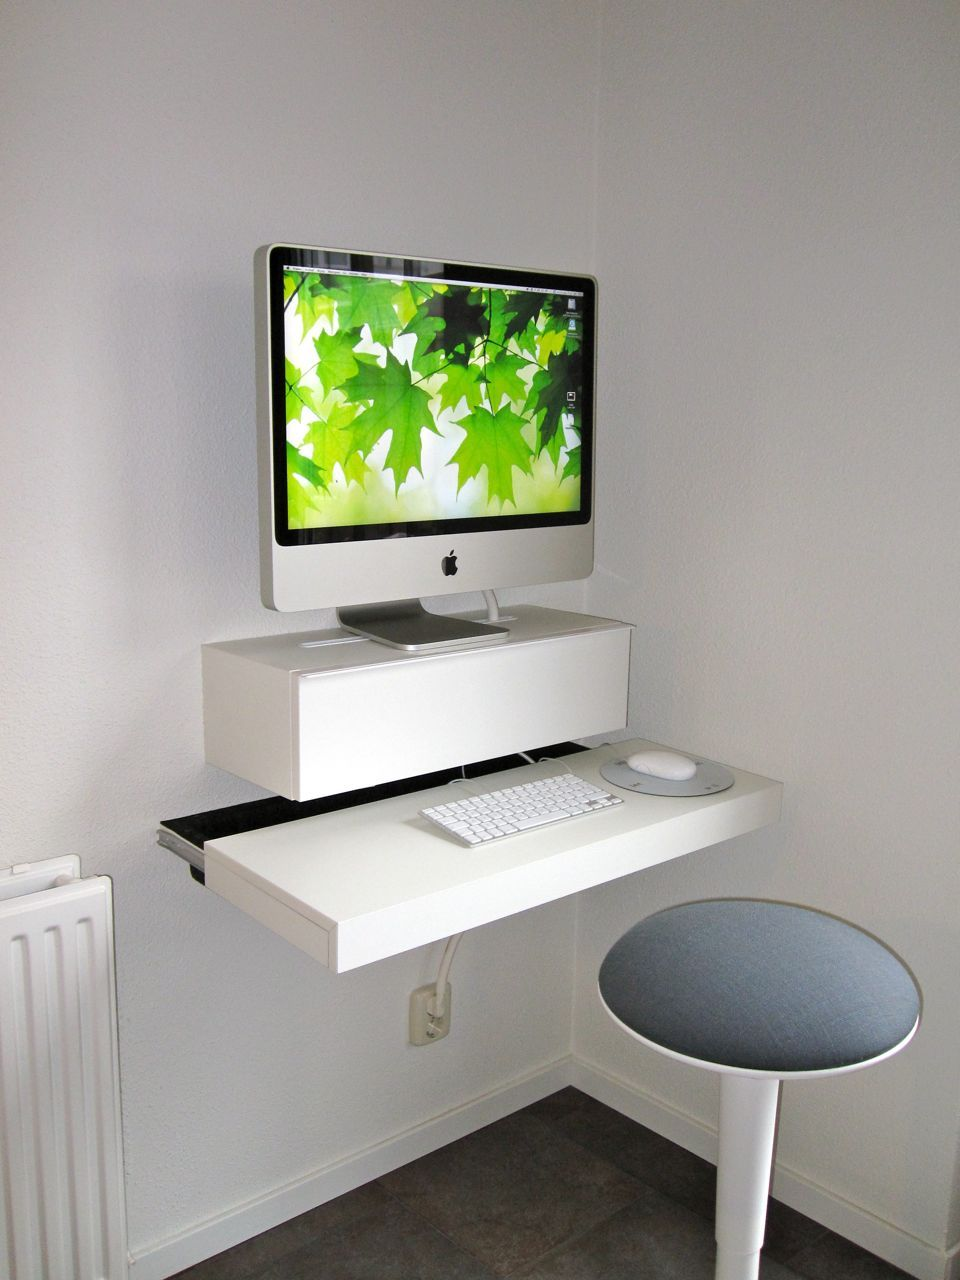 imac furniture. Small Desk For Imac - City Furniture Living Room Set Check More At Http:/ .